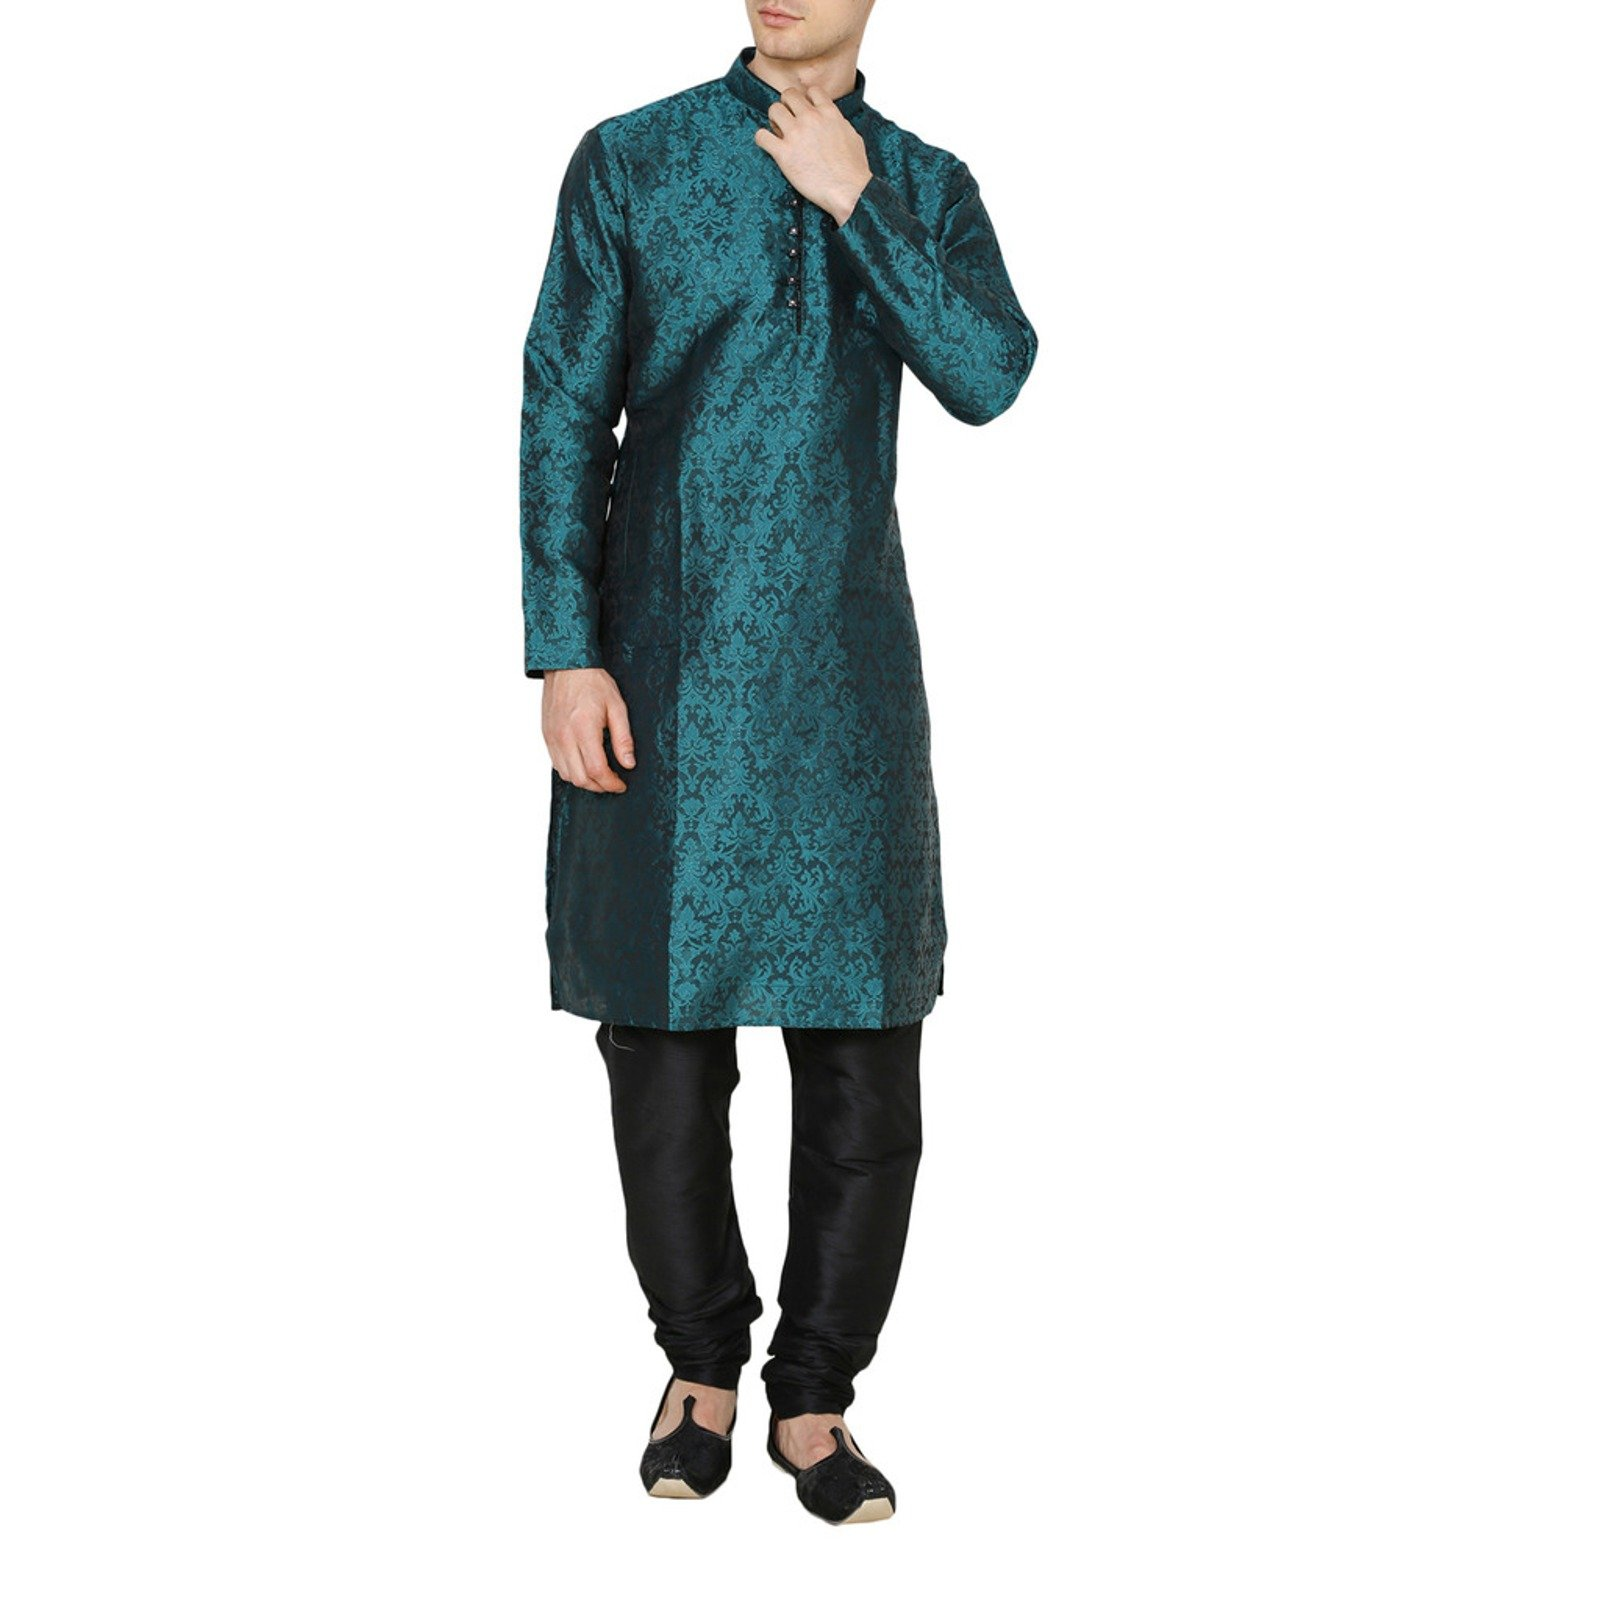 RUCHI MART Men's Ethnic Wedding Wear Kurta Pajama Jacquard Silk Churidar Dress